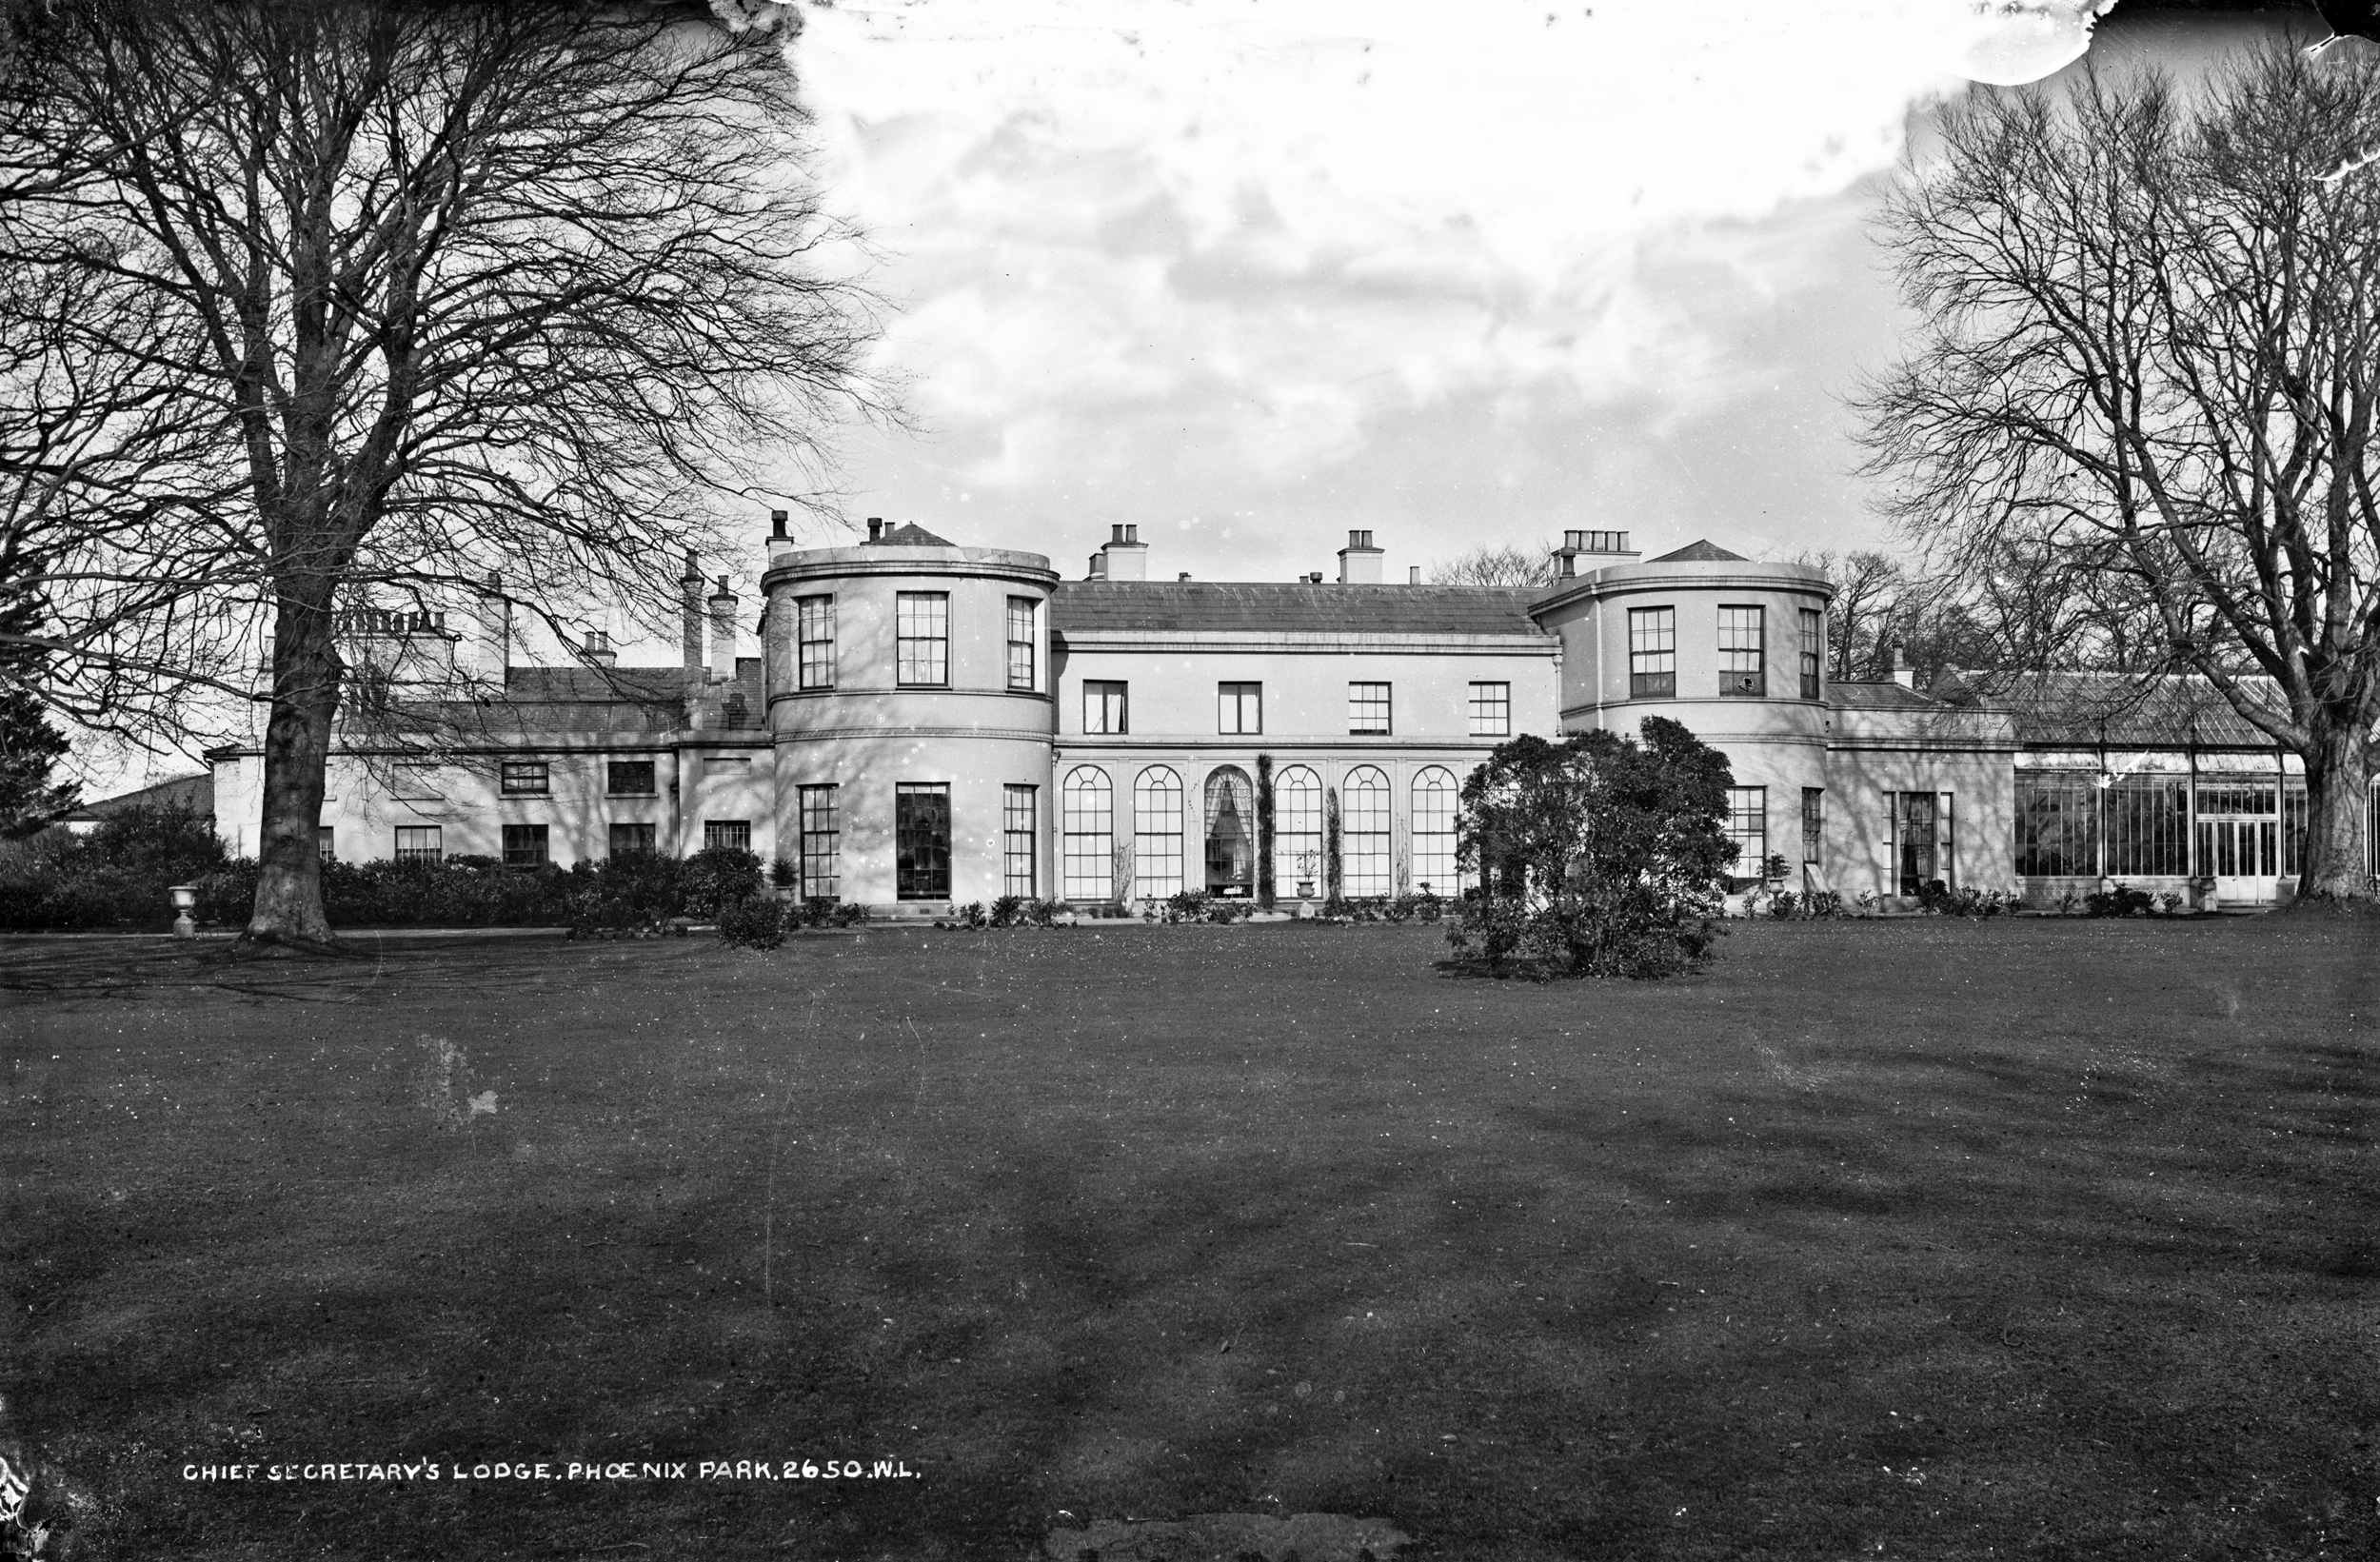 Chief Secretary's Lodge now Deerfield, Phoenix Park, Dublin.